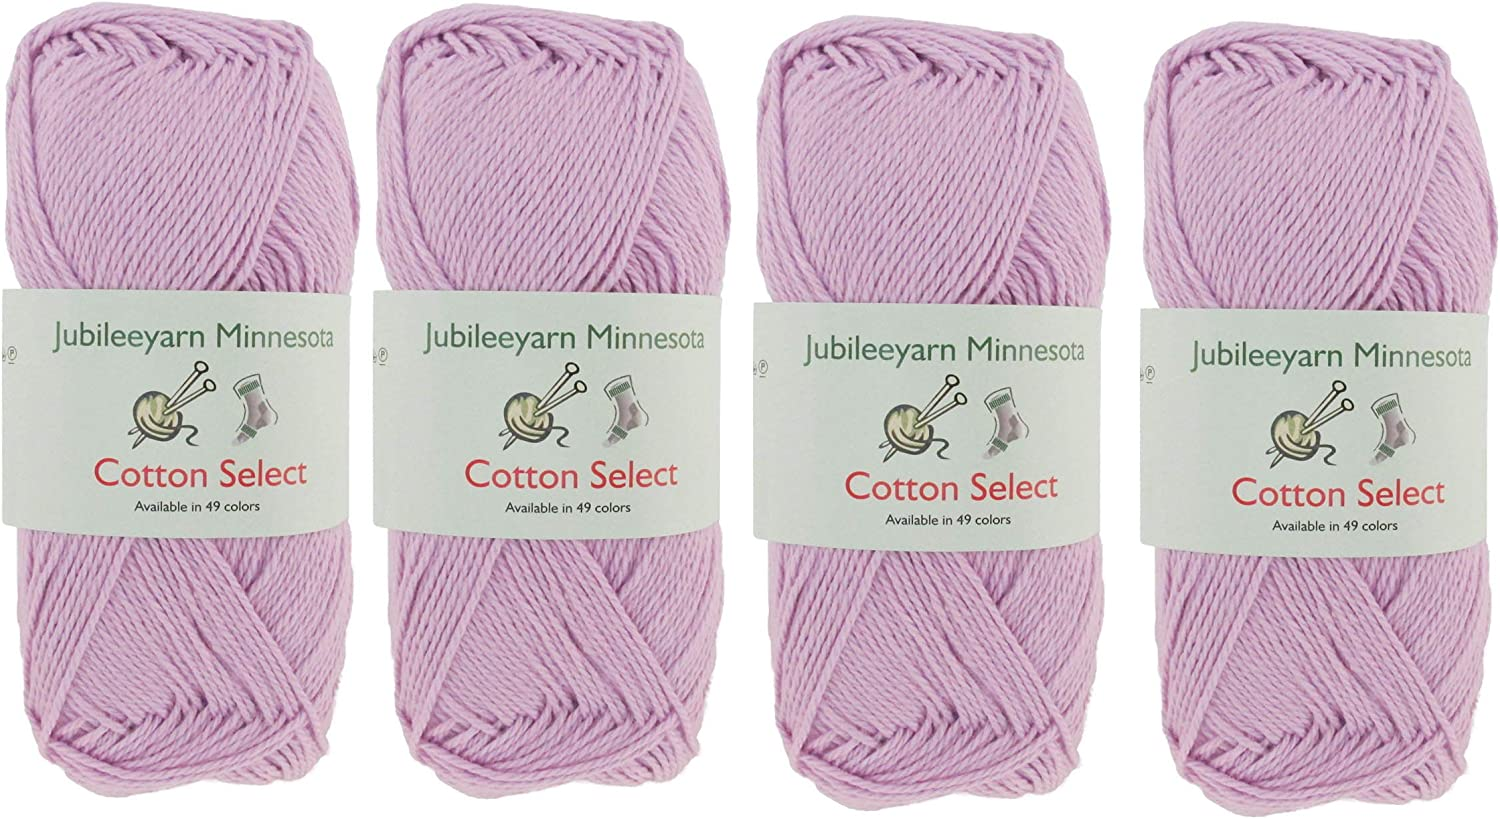 Shades of Pink 4 Skeins Cotton Select Sport Weight Yarn Color Palette Pack 100/% Fine Cotton